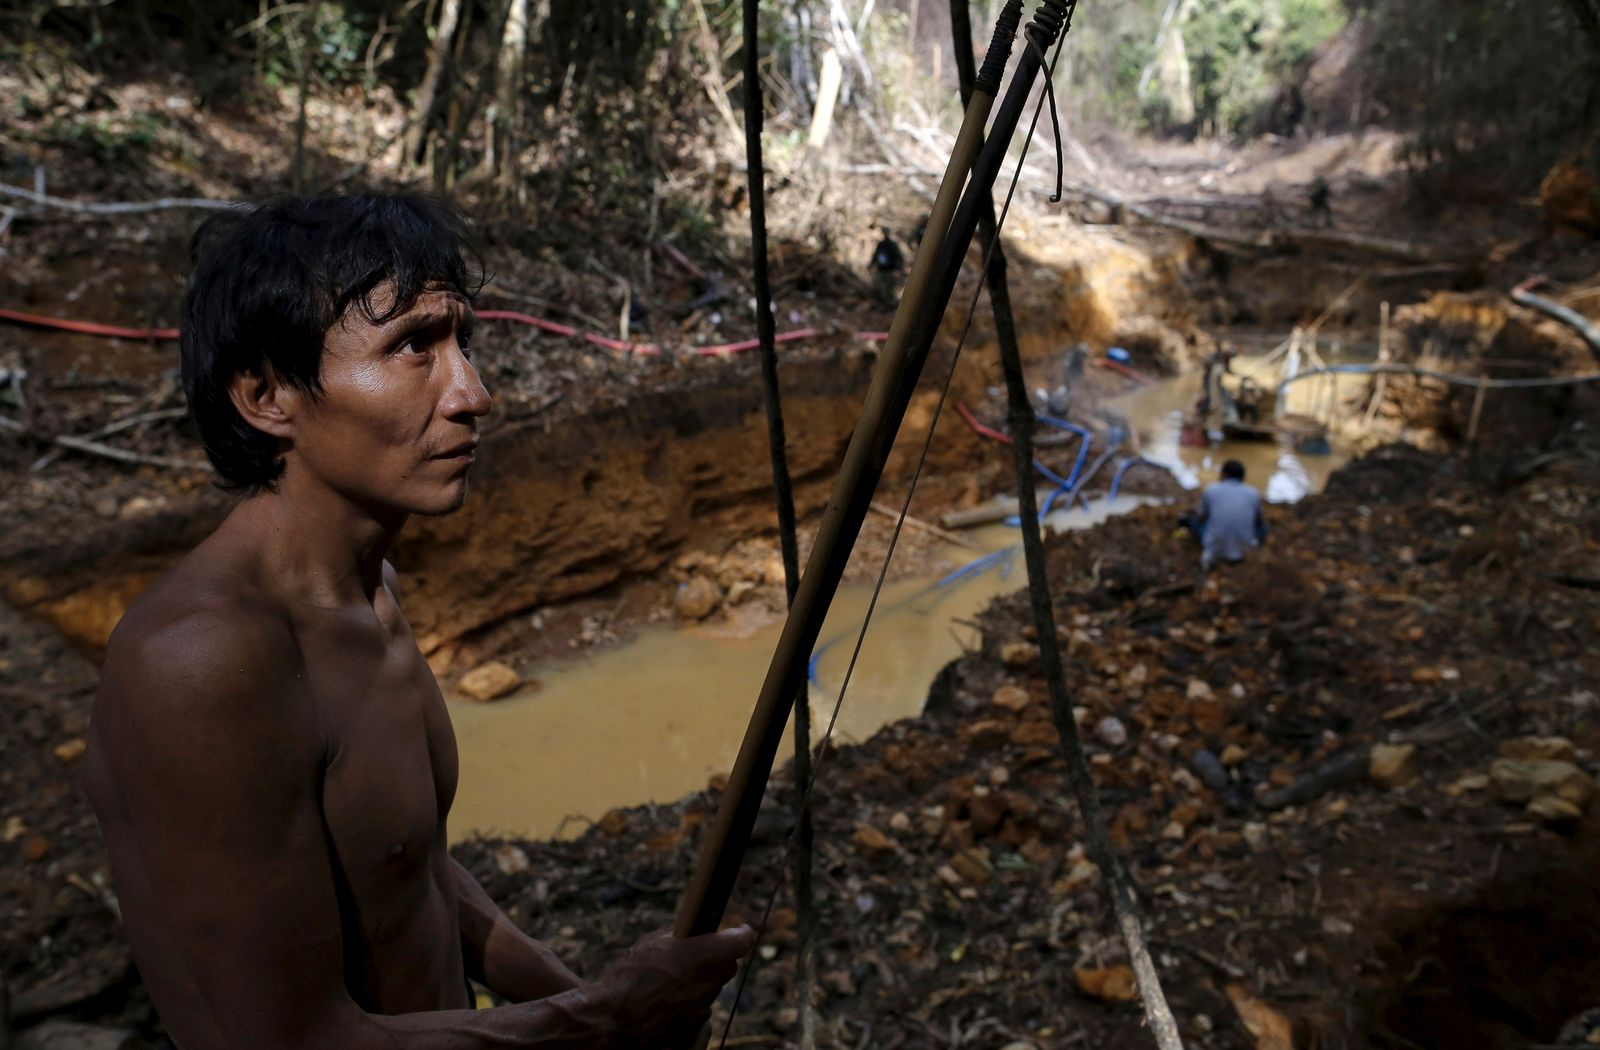 The Wider Image: Illegal gold mining in the Amazon